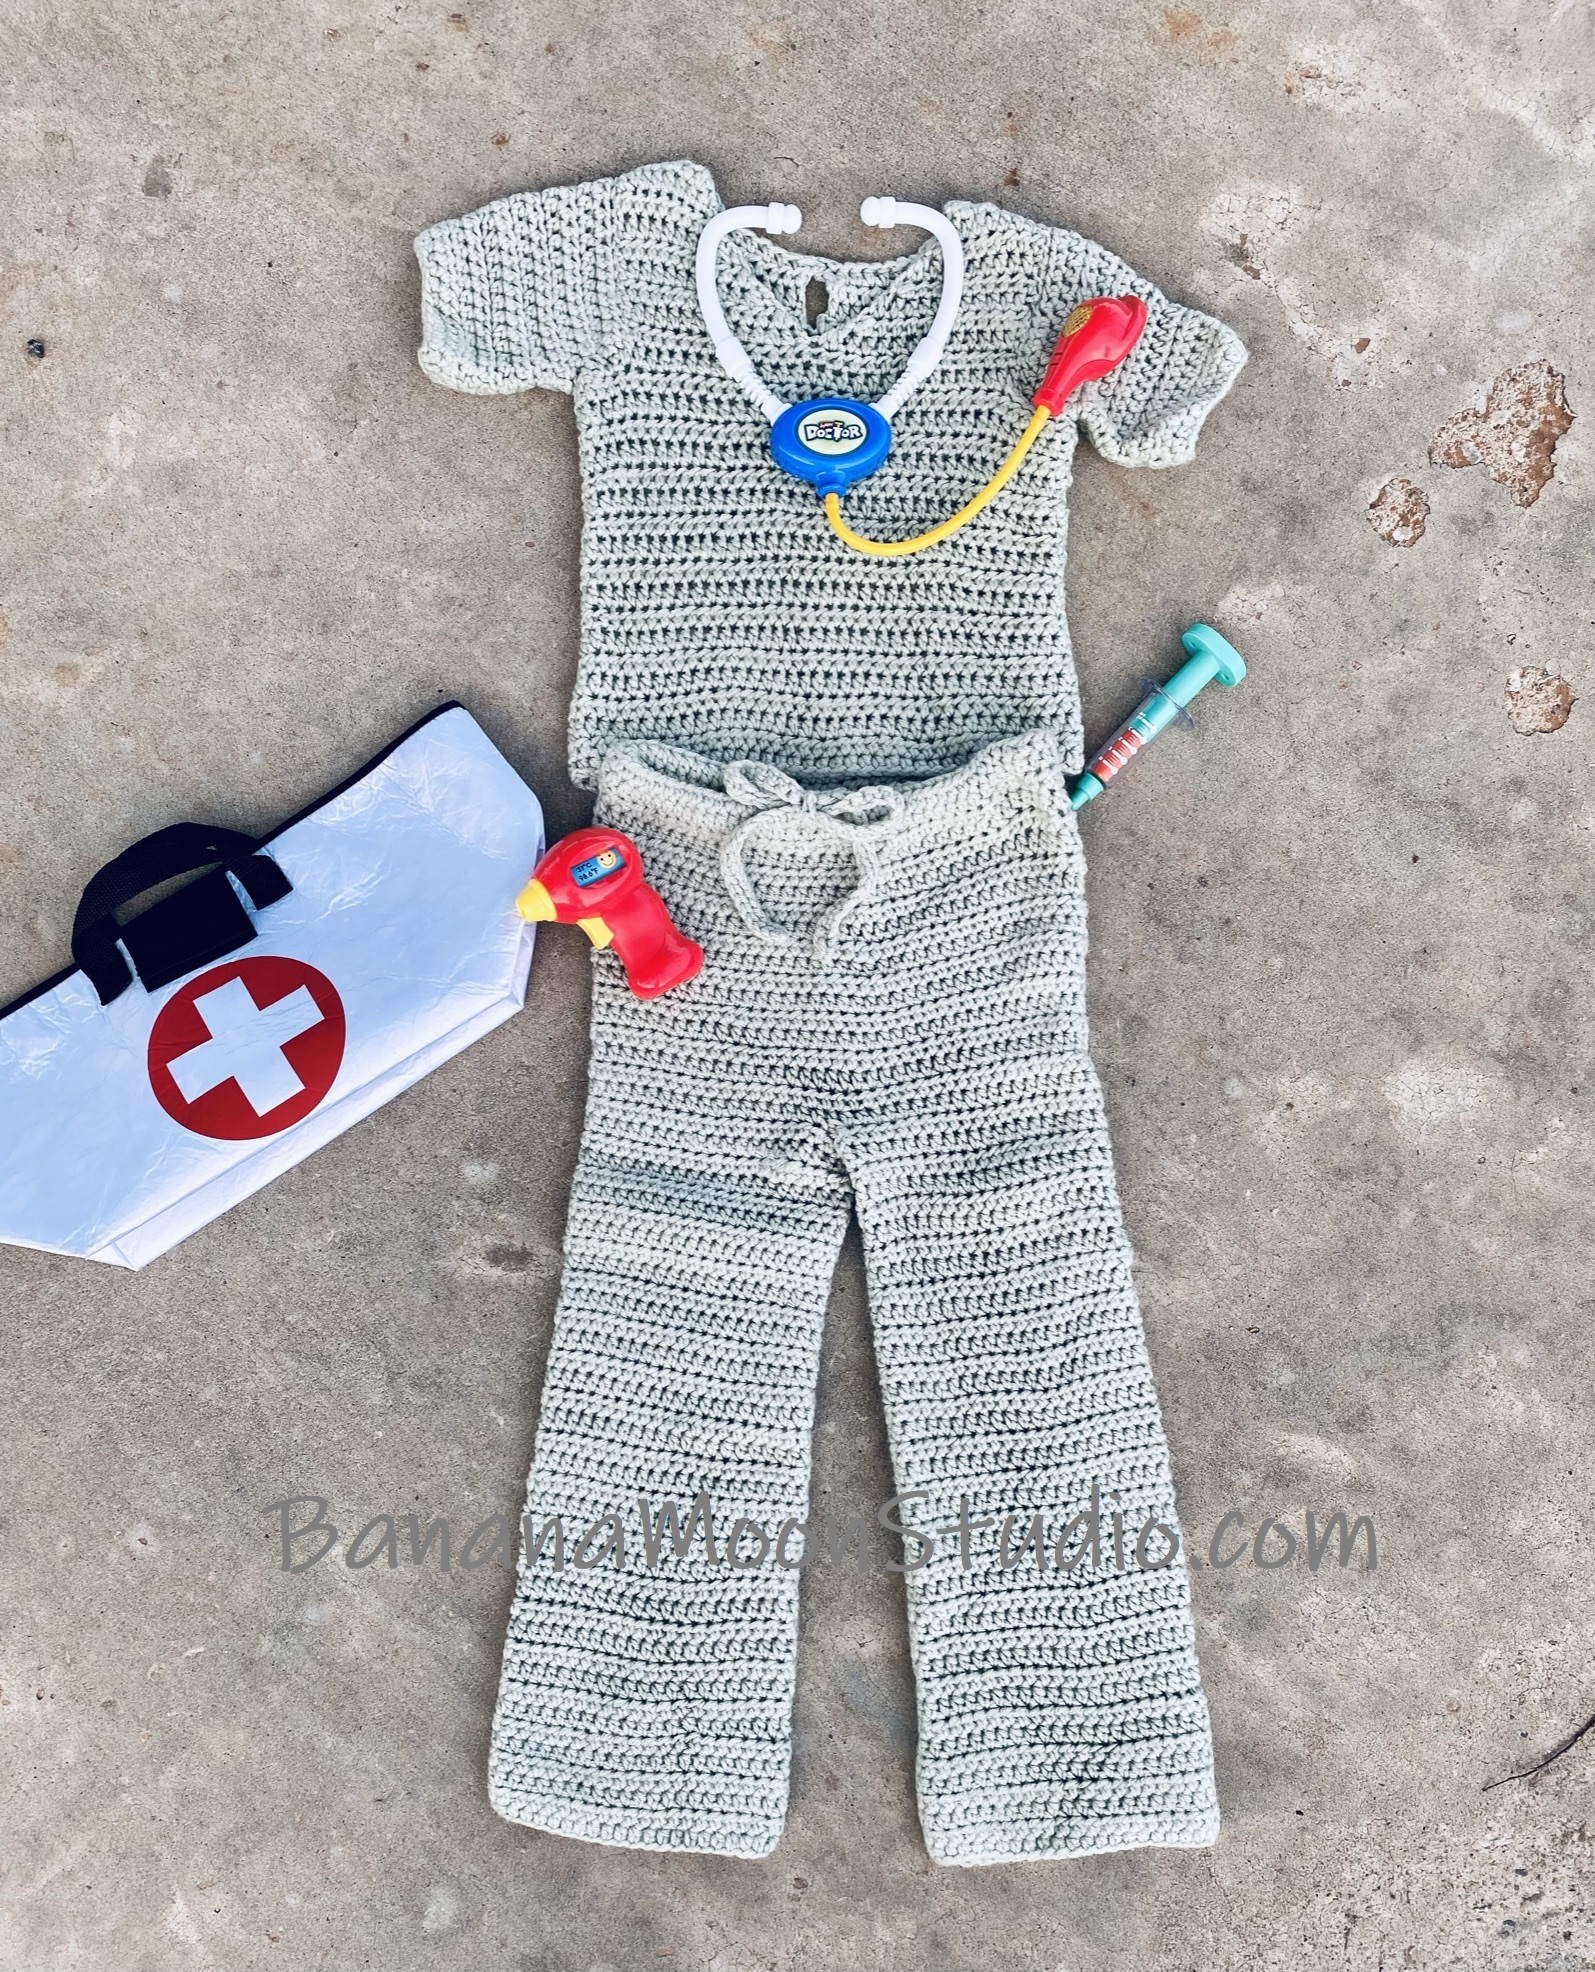 Pale green crochet top and shorts set that are a children's scrubs costume. Various children's doctor toys. Gray background. Text reads: BananaMoonStudio.com